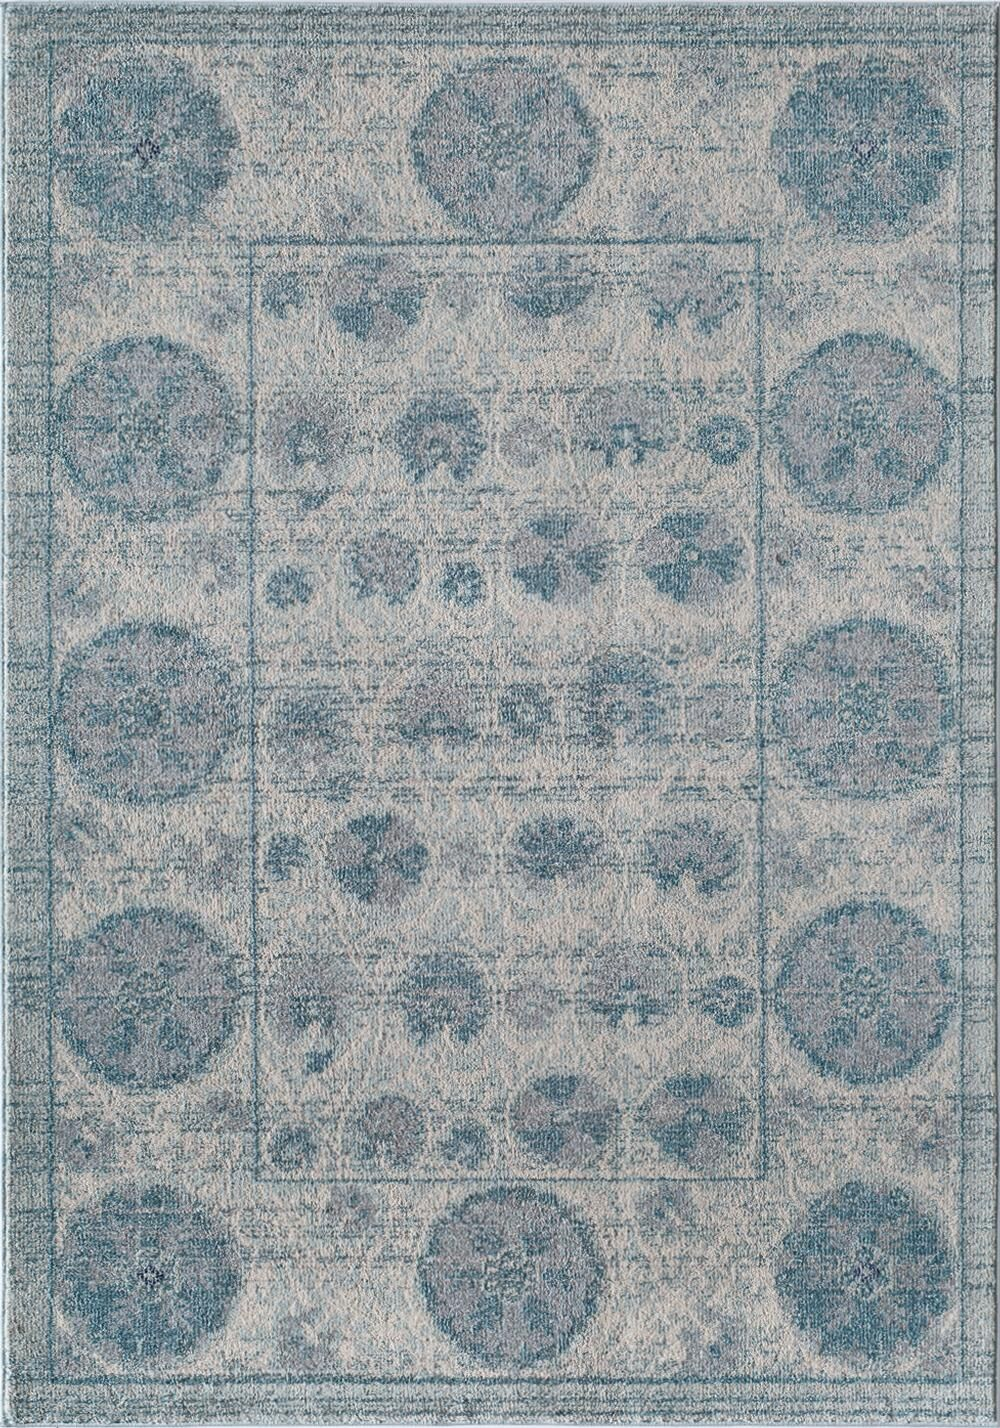 Beverly Blue Area Rug Rug Size: Rectangle 4' x 5'7